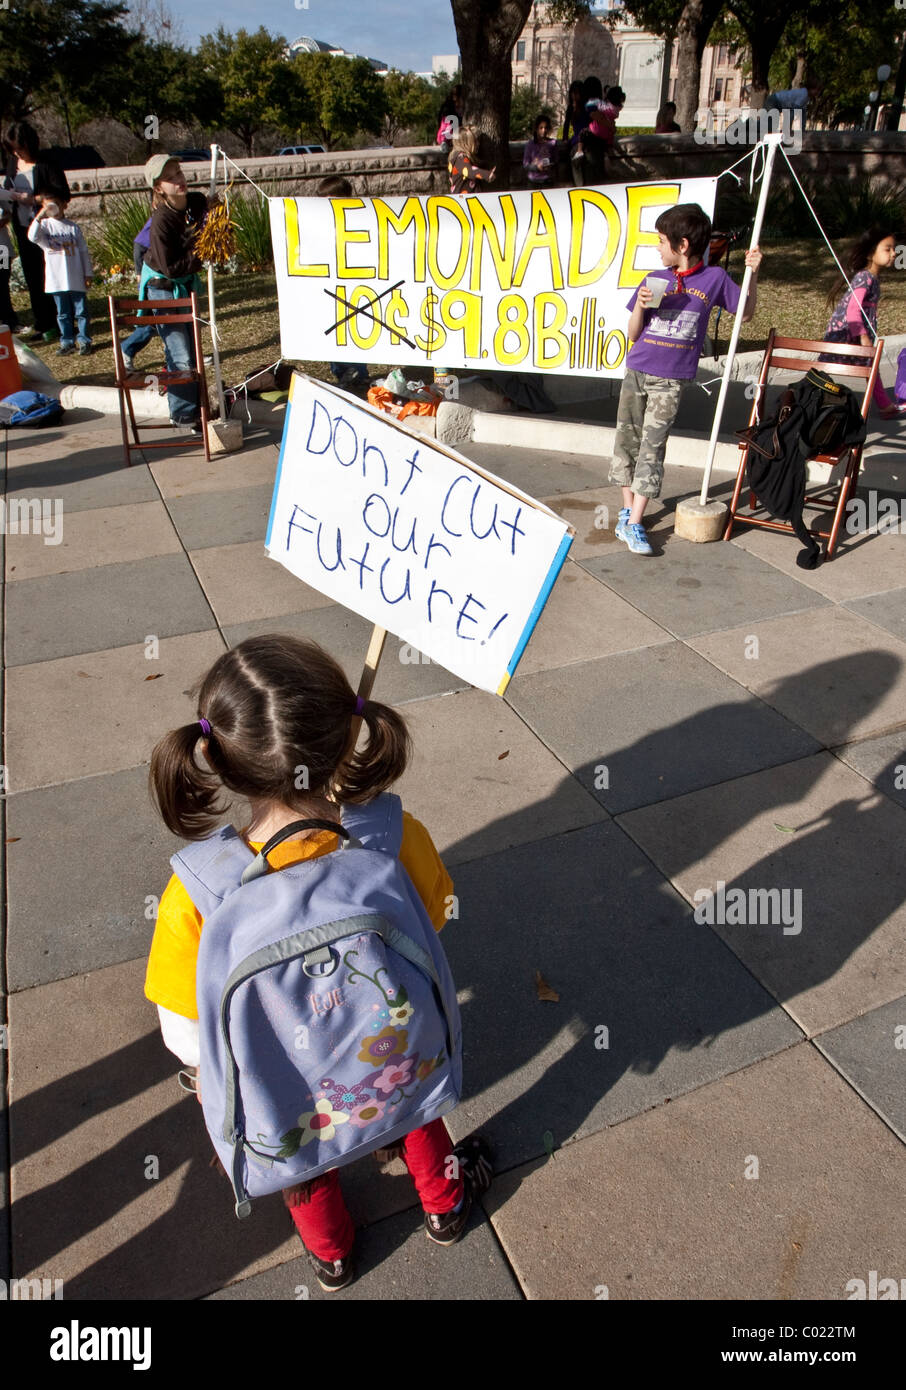 Elementary school aged girl holds sign during protest against education funding  and budget cuts in Texas - Stock Image